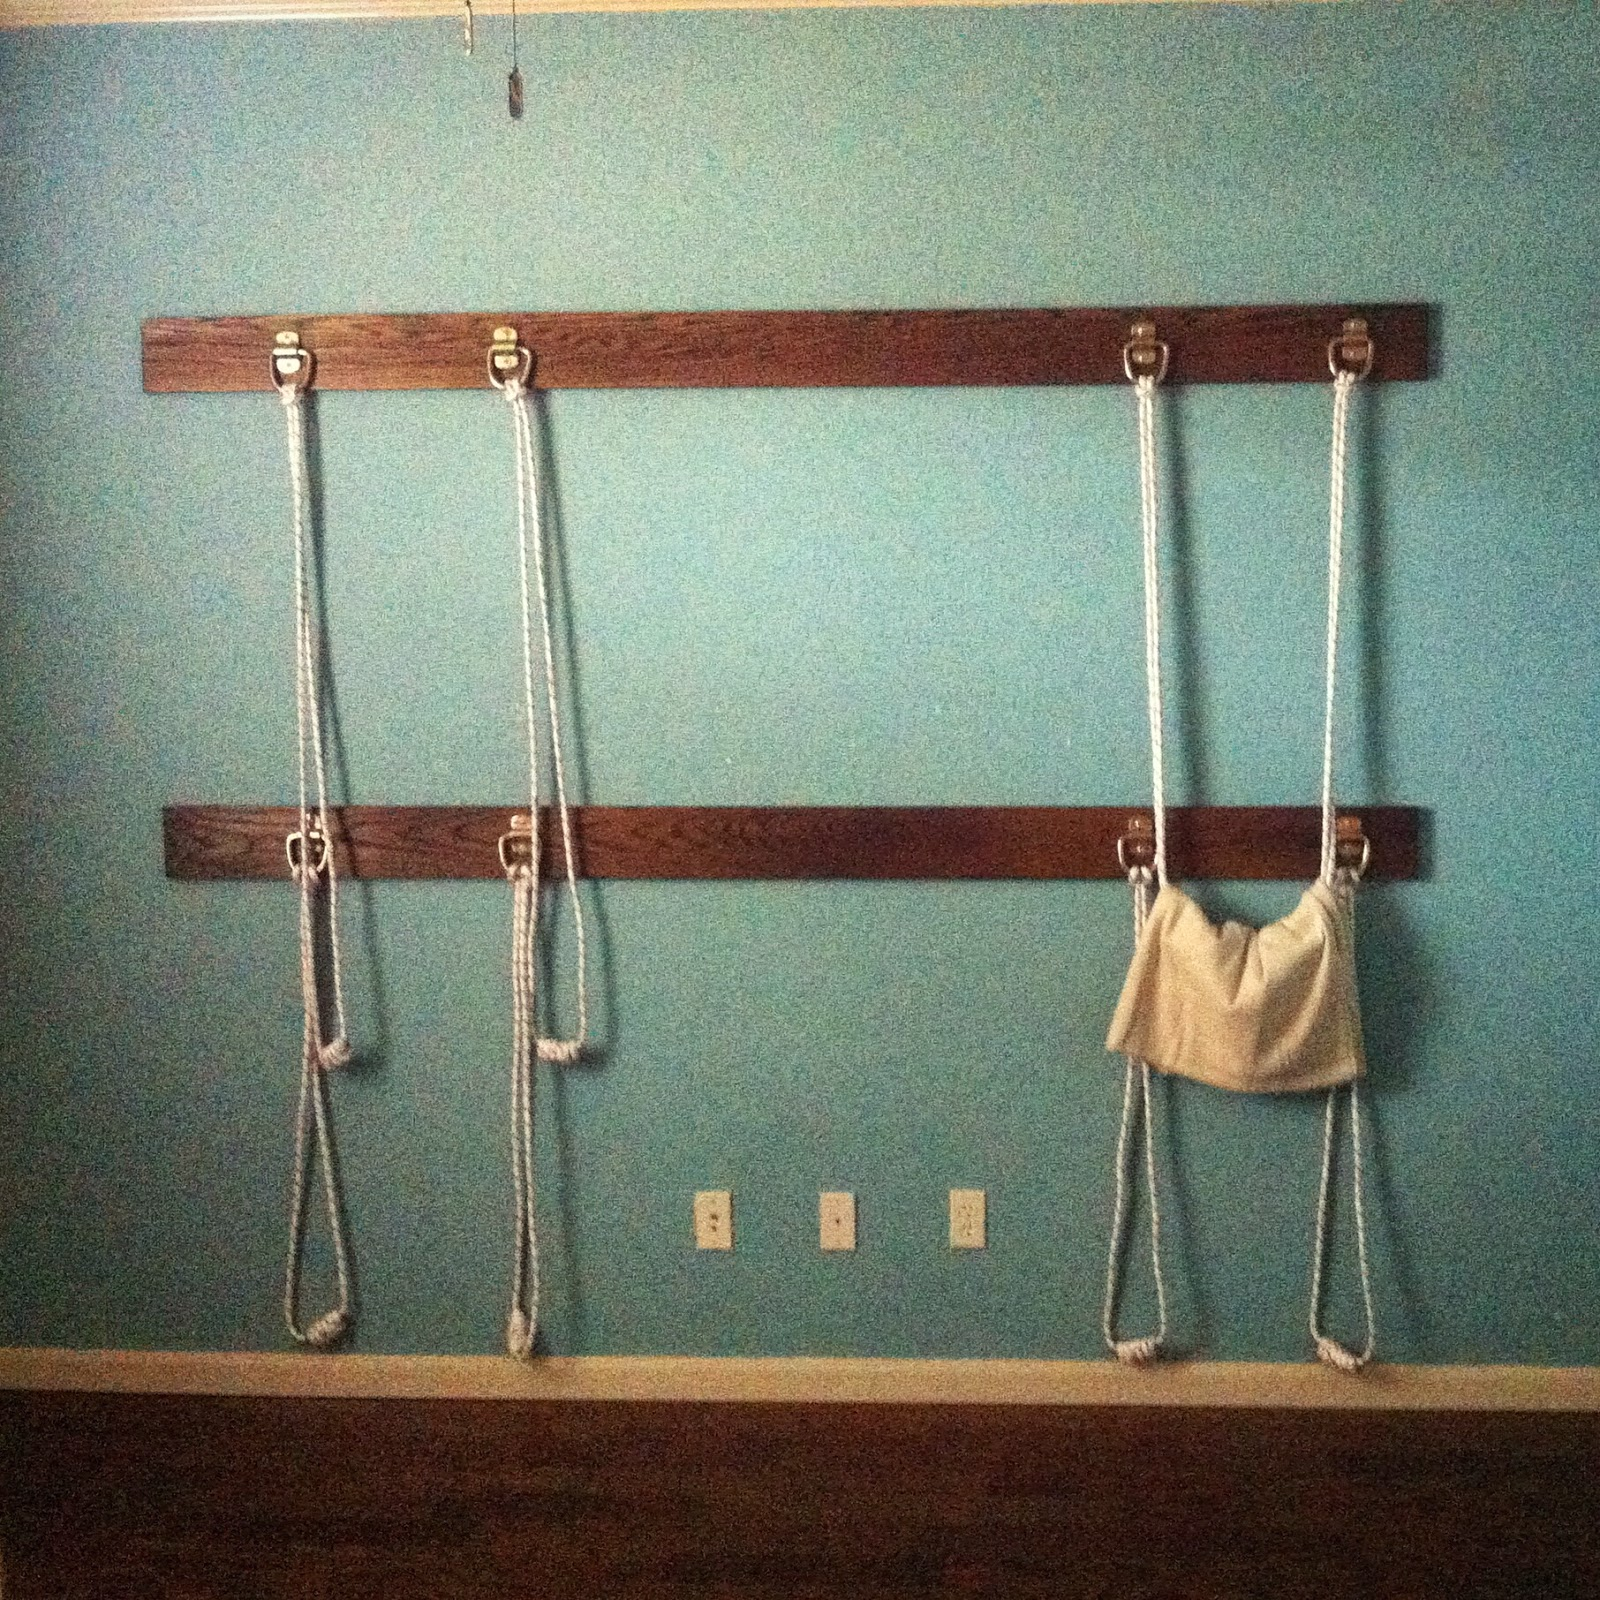 Fun with props diy rope wall for How to make a rope wall